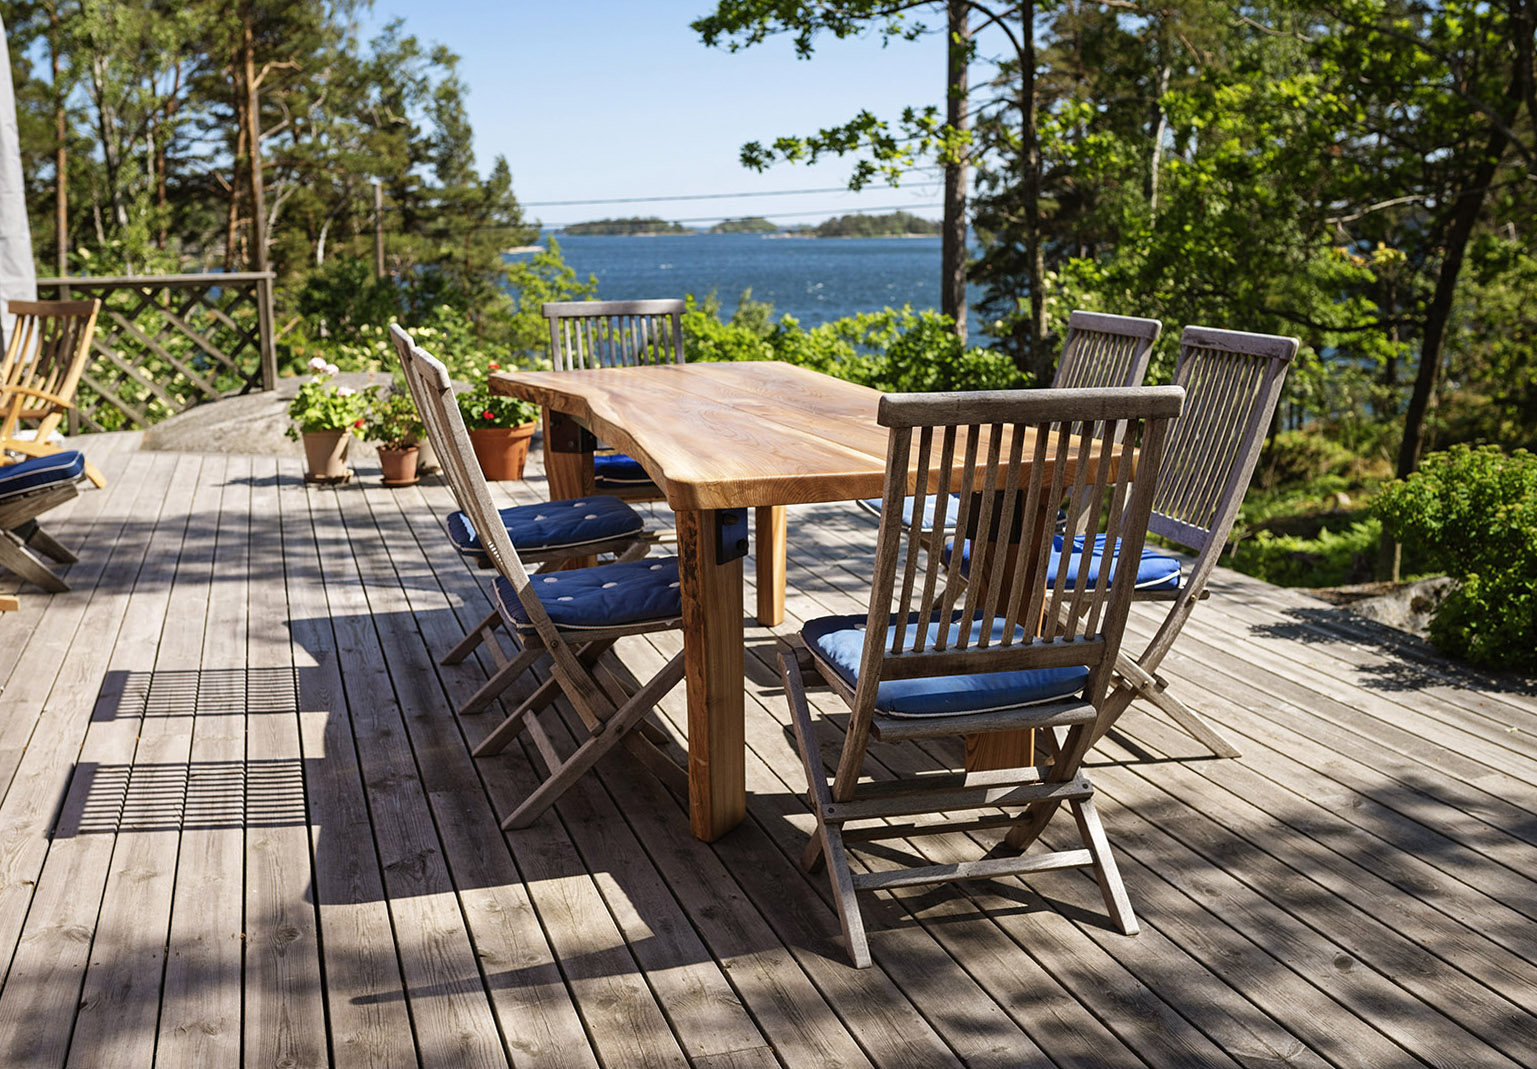 Summer house tables #22